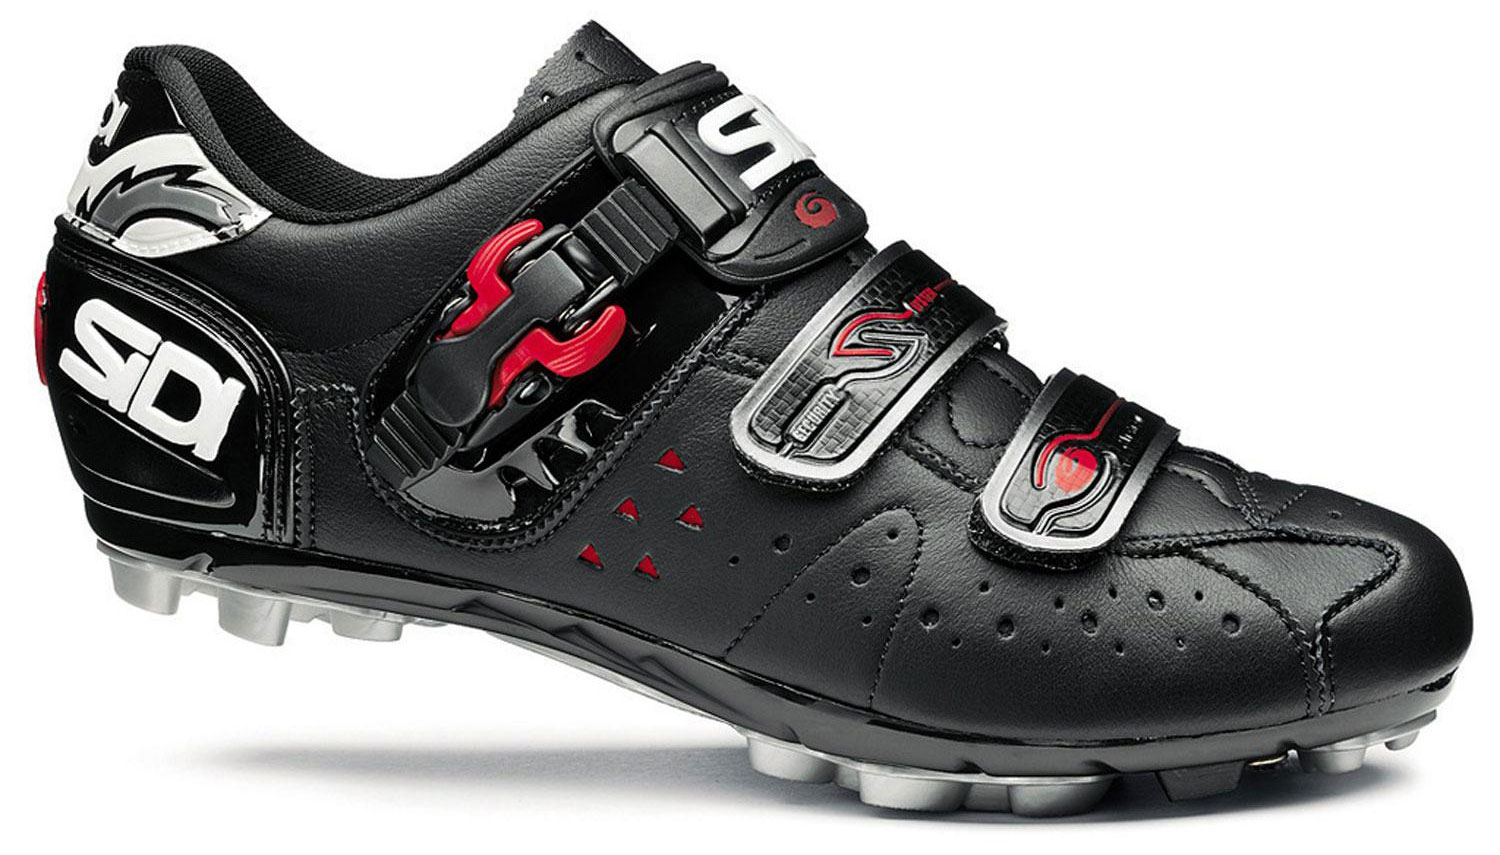 Sidi Dominator 5 Mountain Bike Shoes – On The Way